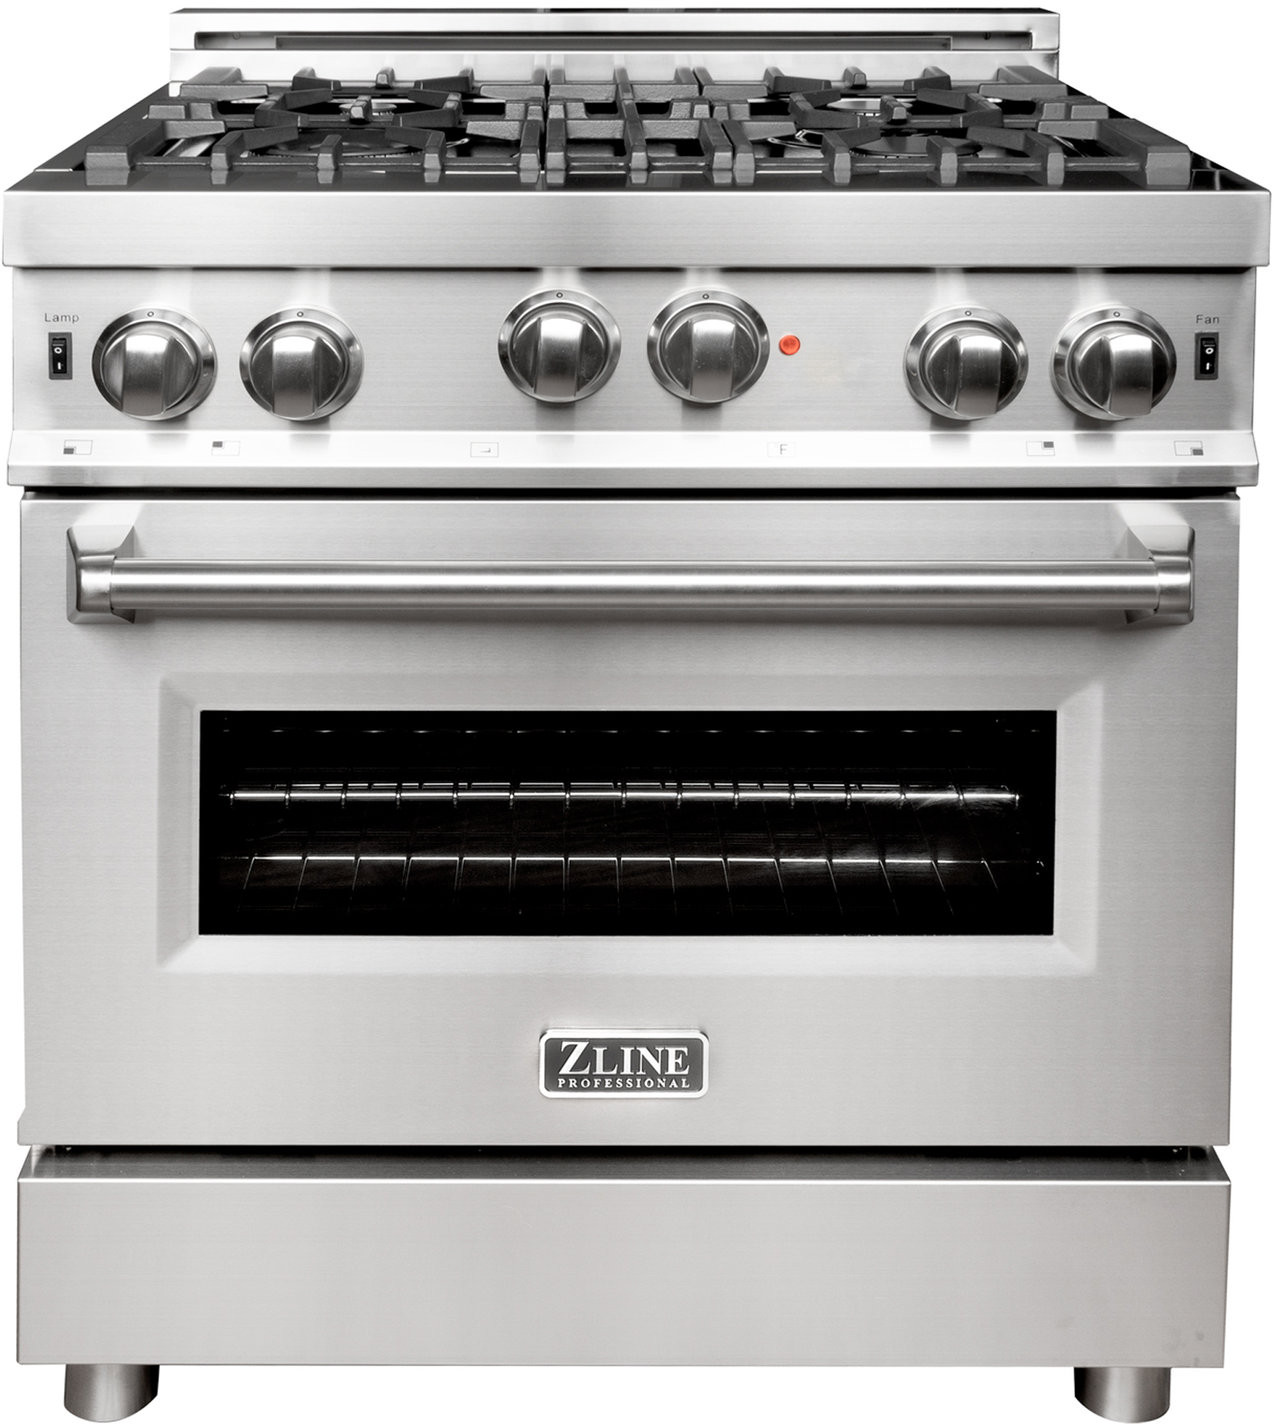 Zline Rg30 30 Inch Gas Range With 4